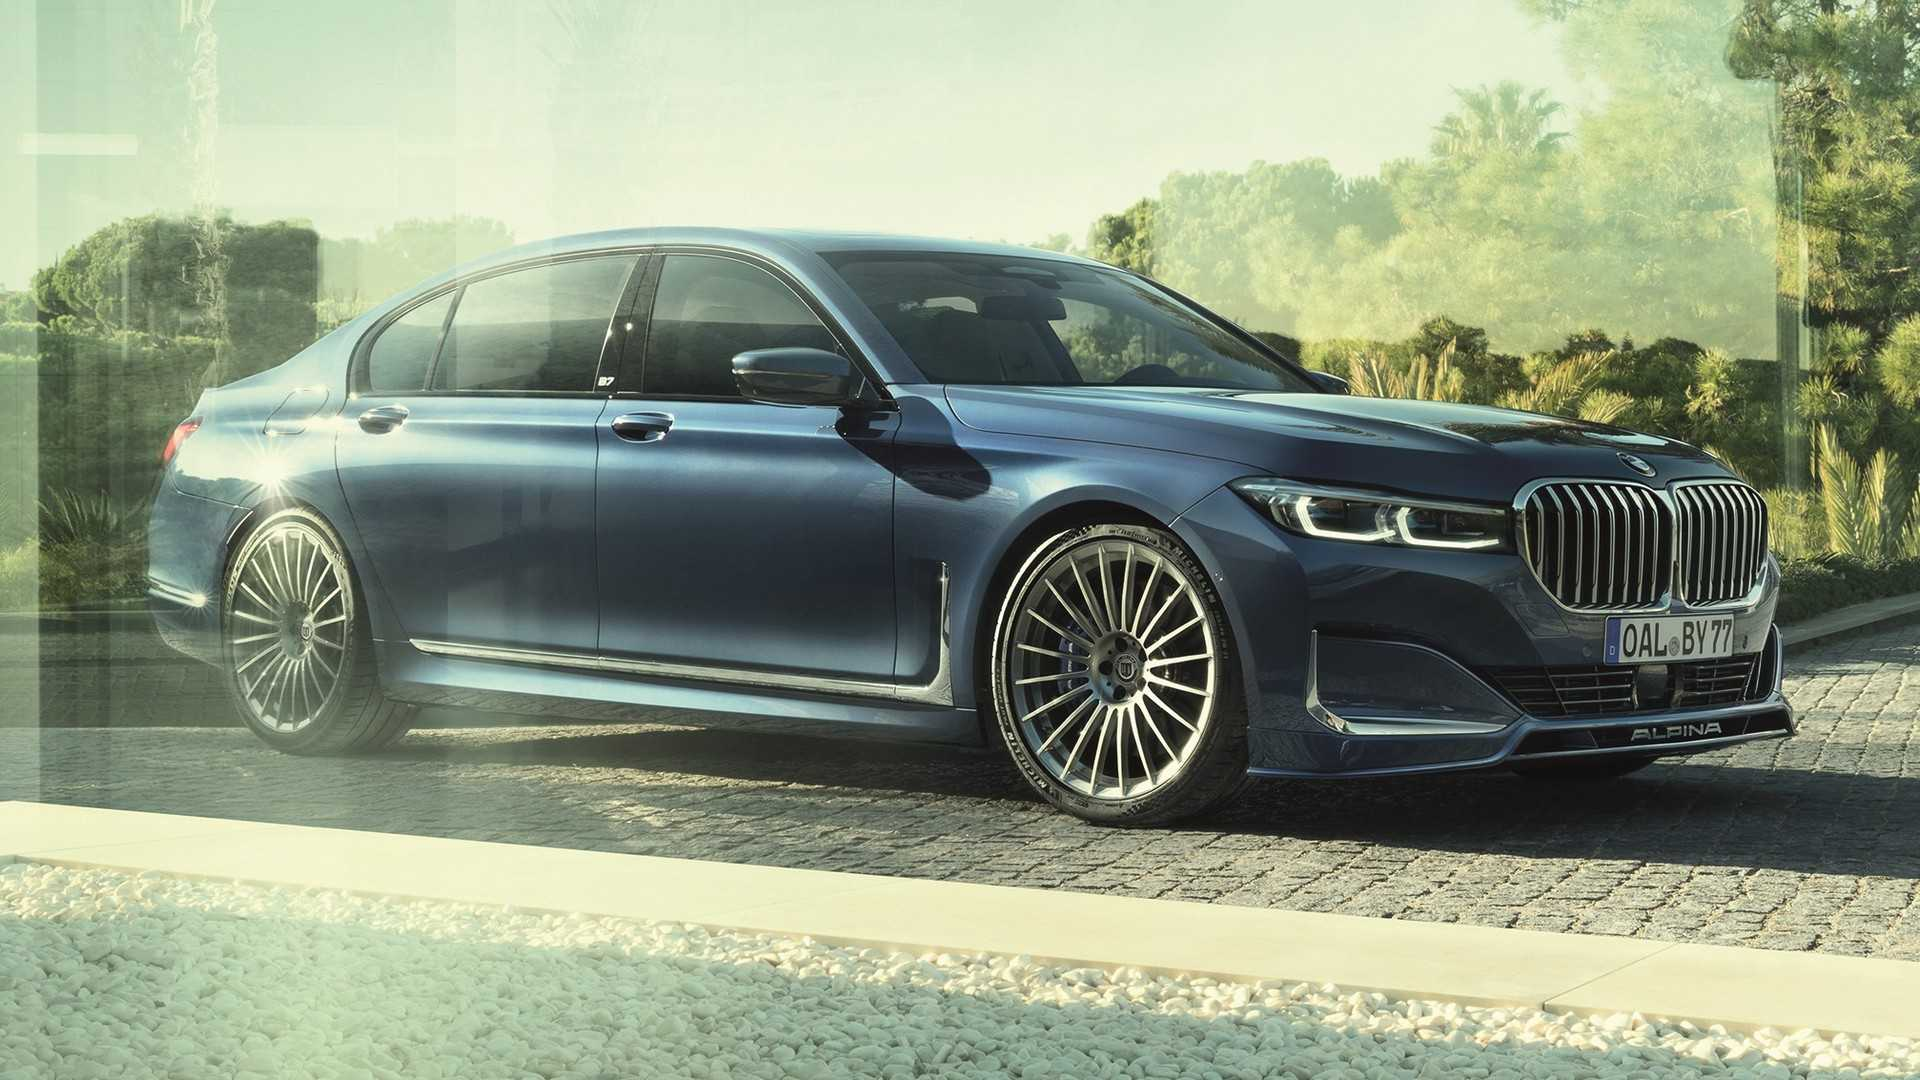 61 The Best BMW B7 Alpina 2020 Ratings